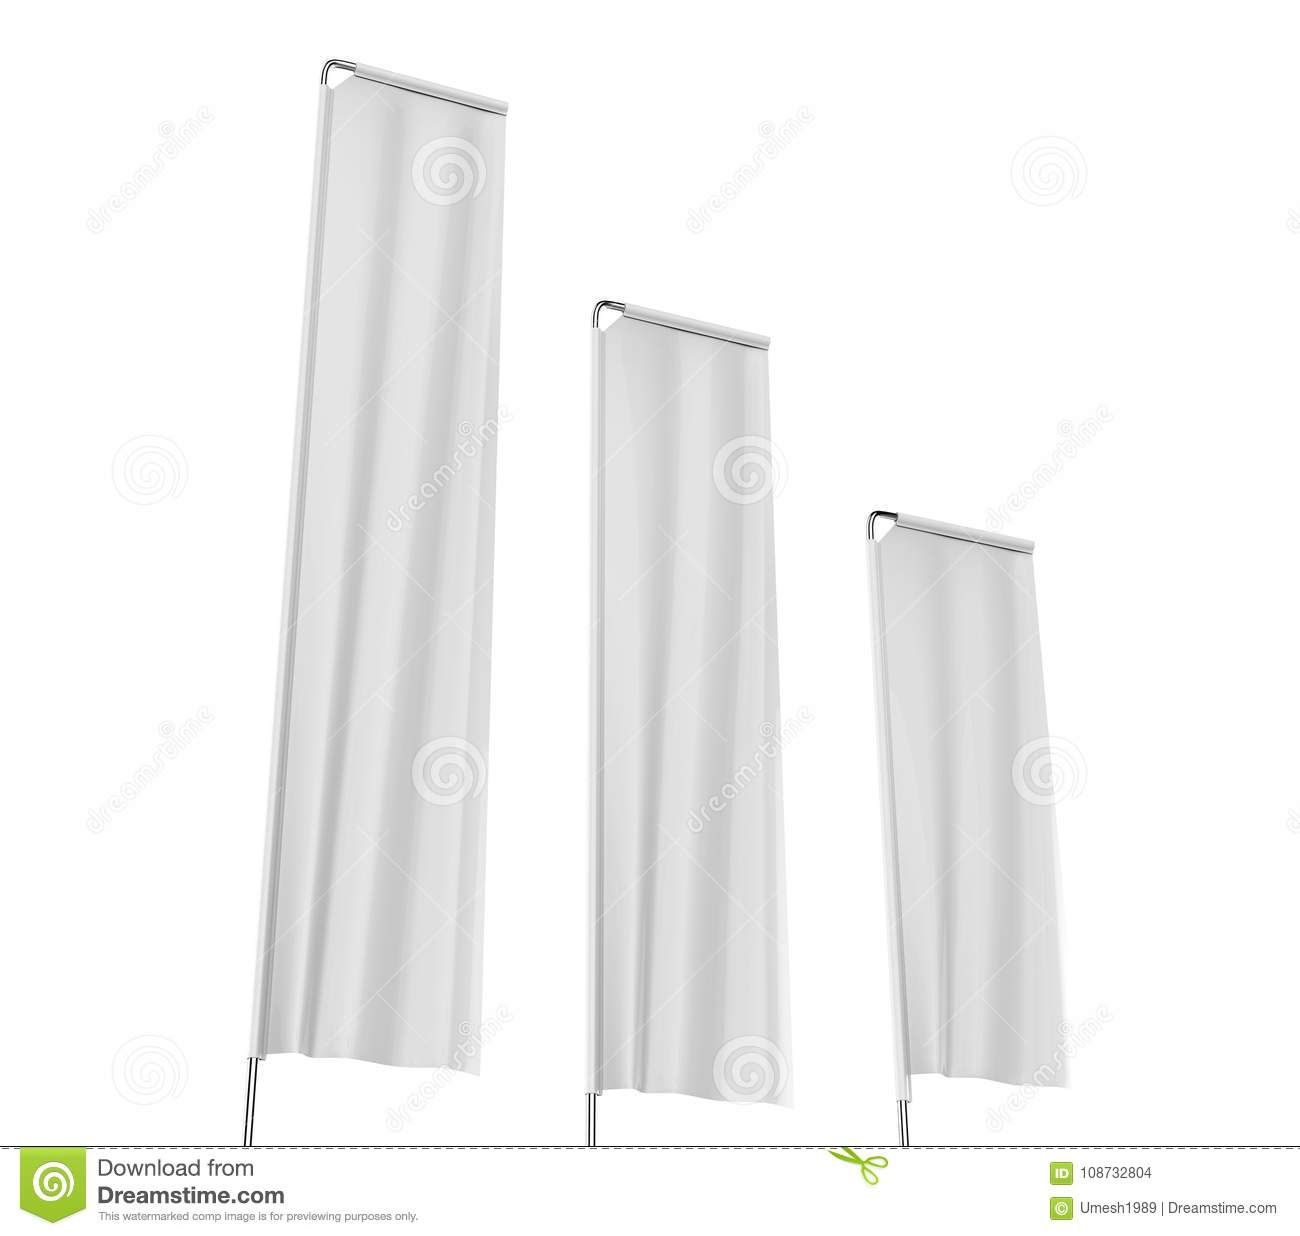 Blank white block rectangular feather flag outdoor Retail Visual Merchandising advertising beach stand promotional flag banner or